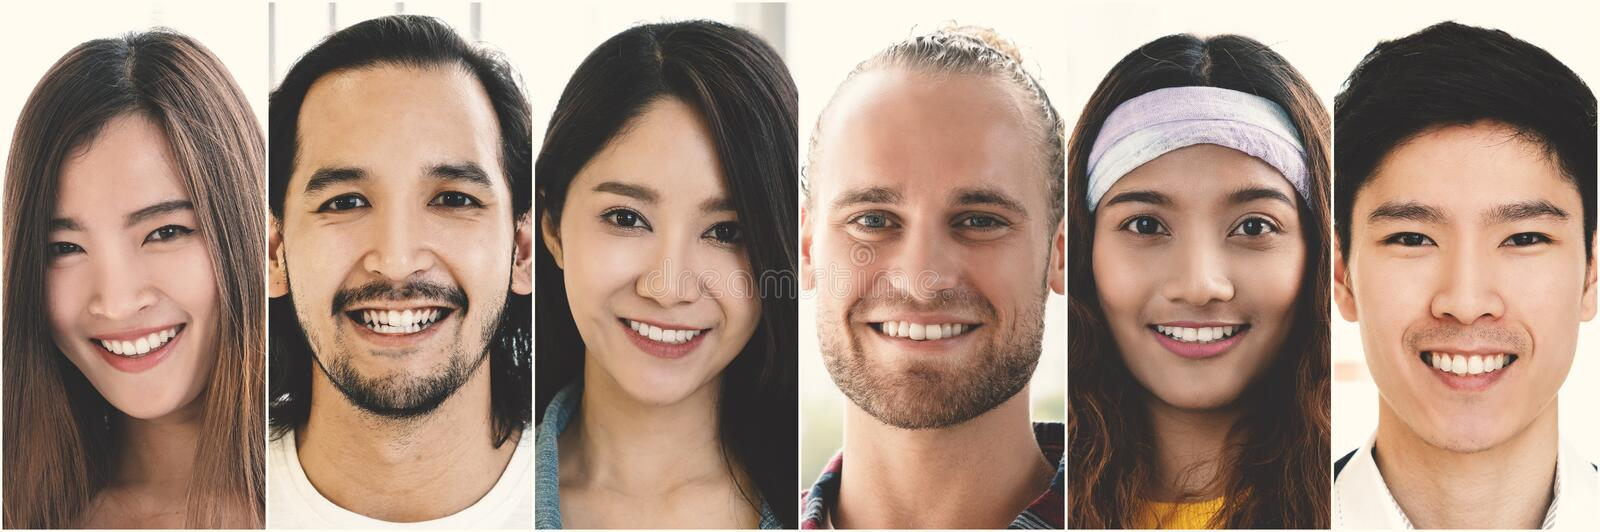 Smiling face group, Happy creative team group of multiethnic people expressing positive emotions and smiles stock photo